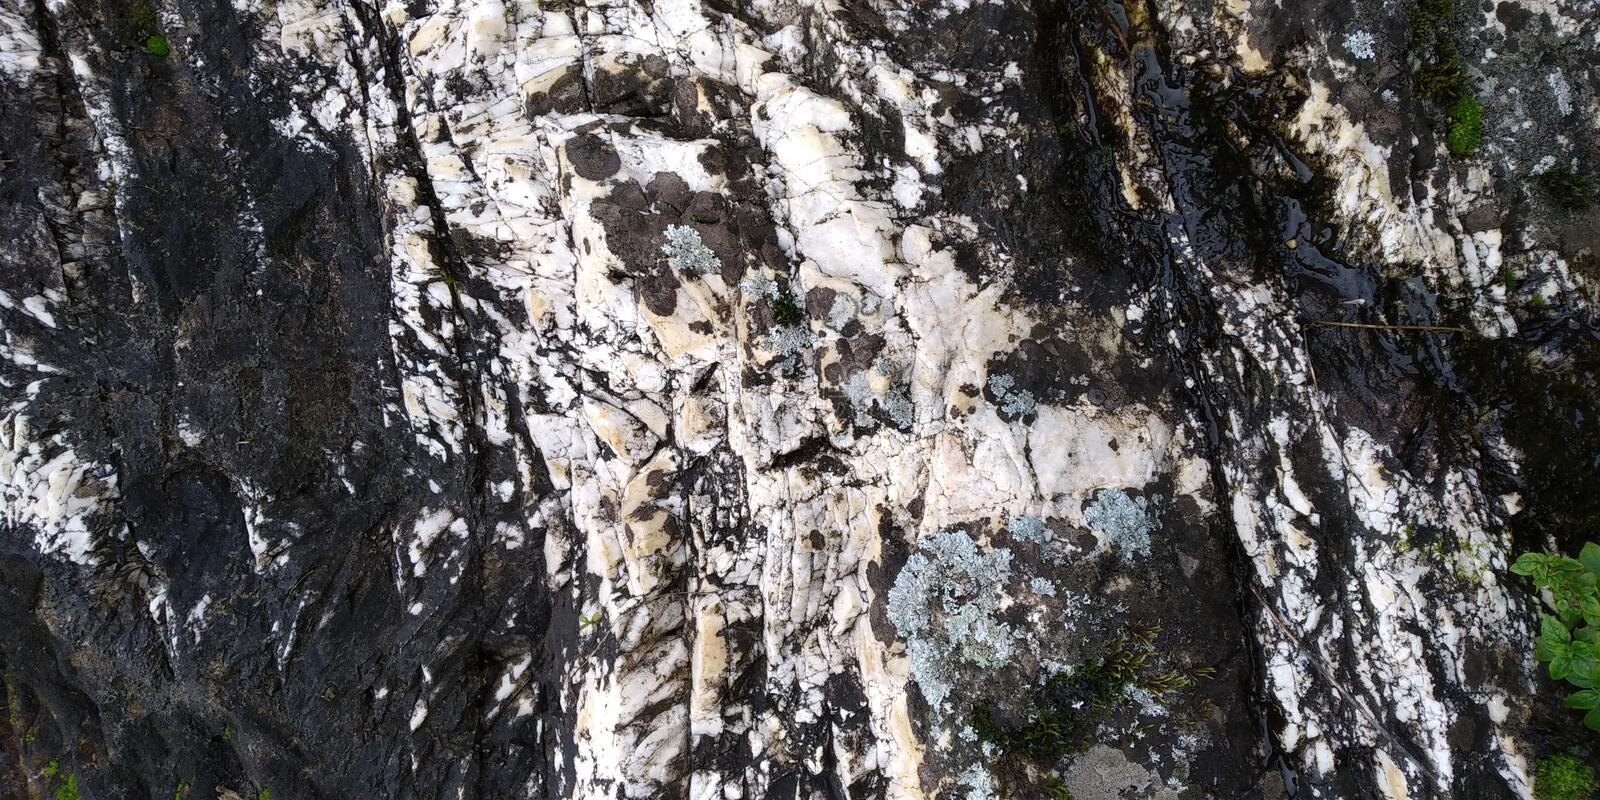 Rock texture with fungi and Leaves royalty free stock photo